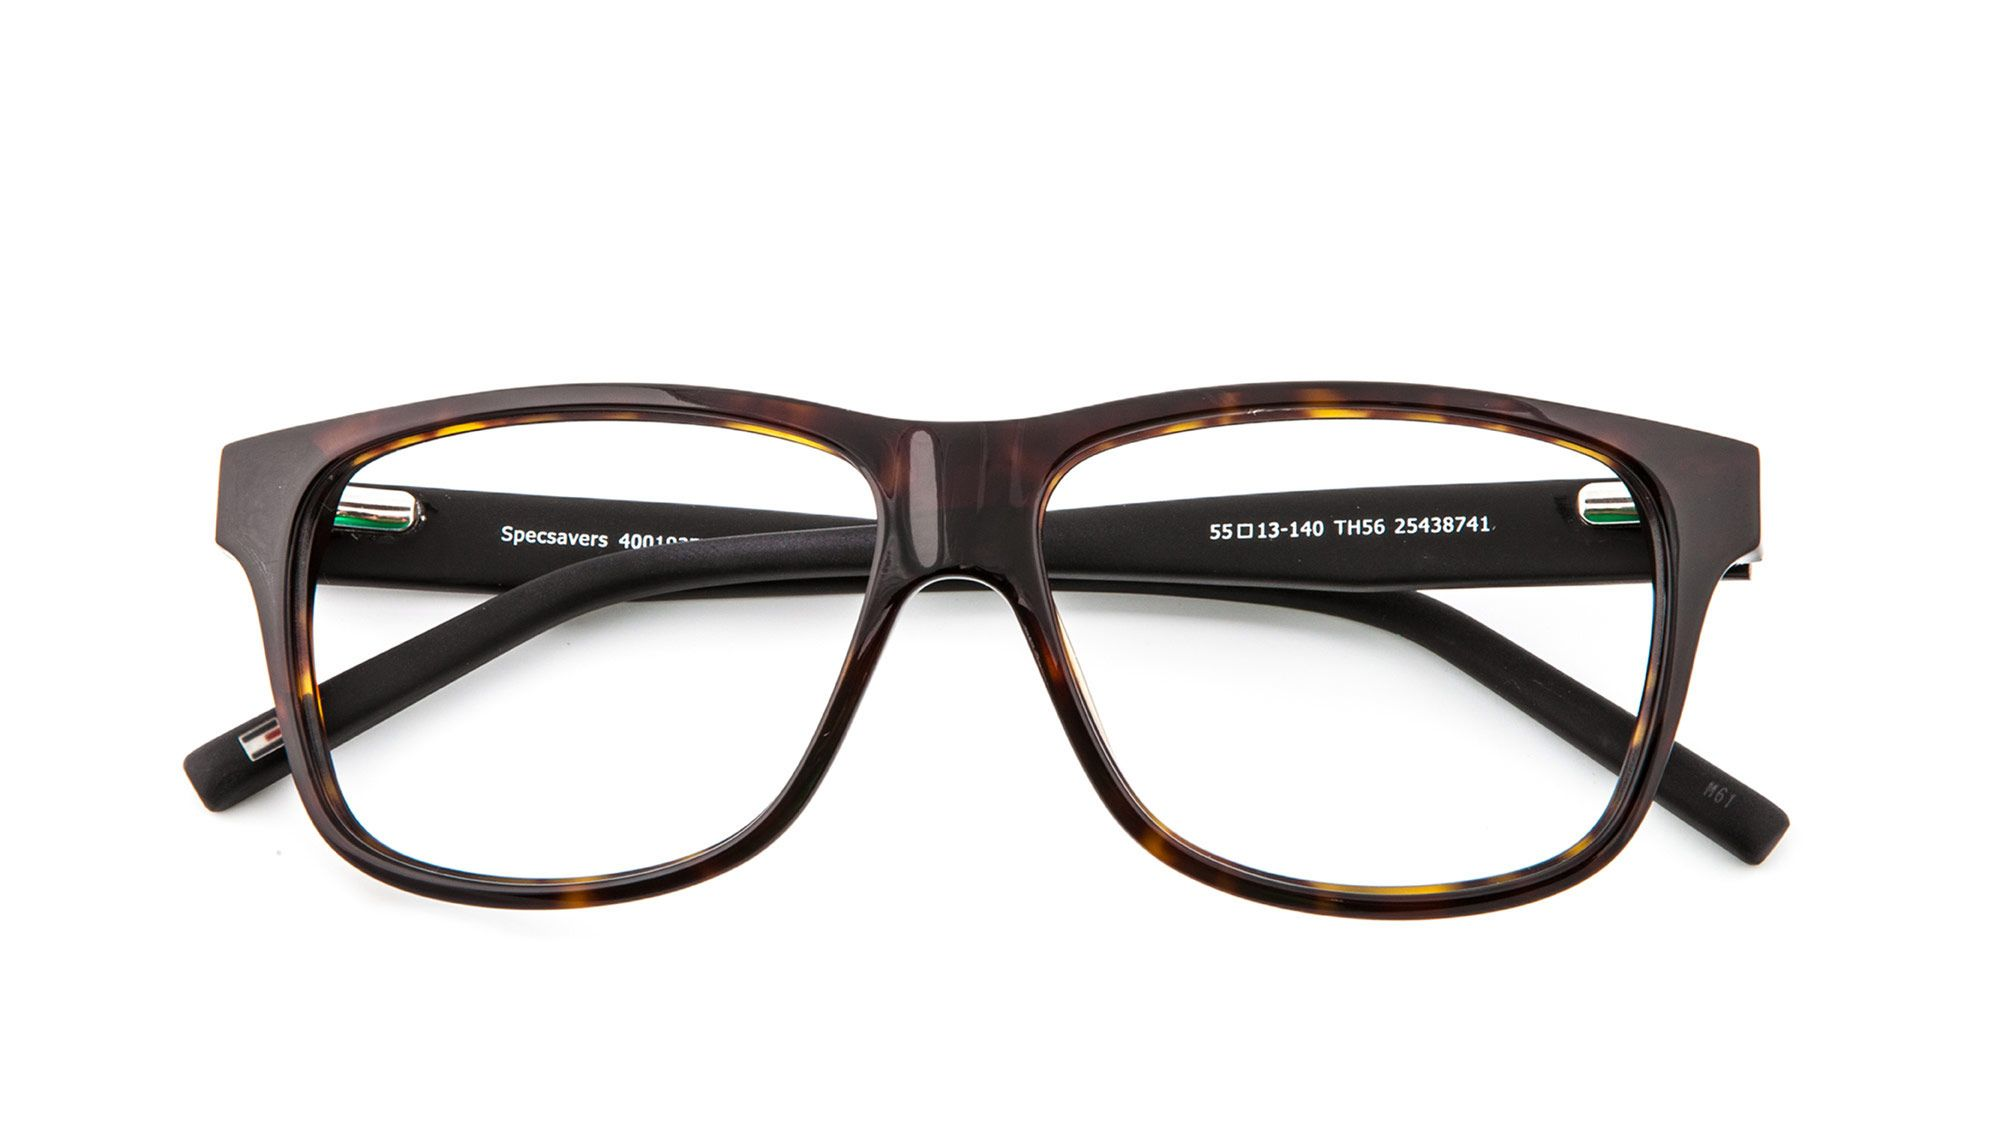 new styles fashion online here TH 56 Glasses by Tommy Hilfiger | Specsavers UK in 2019 ...